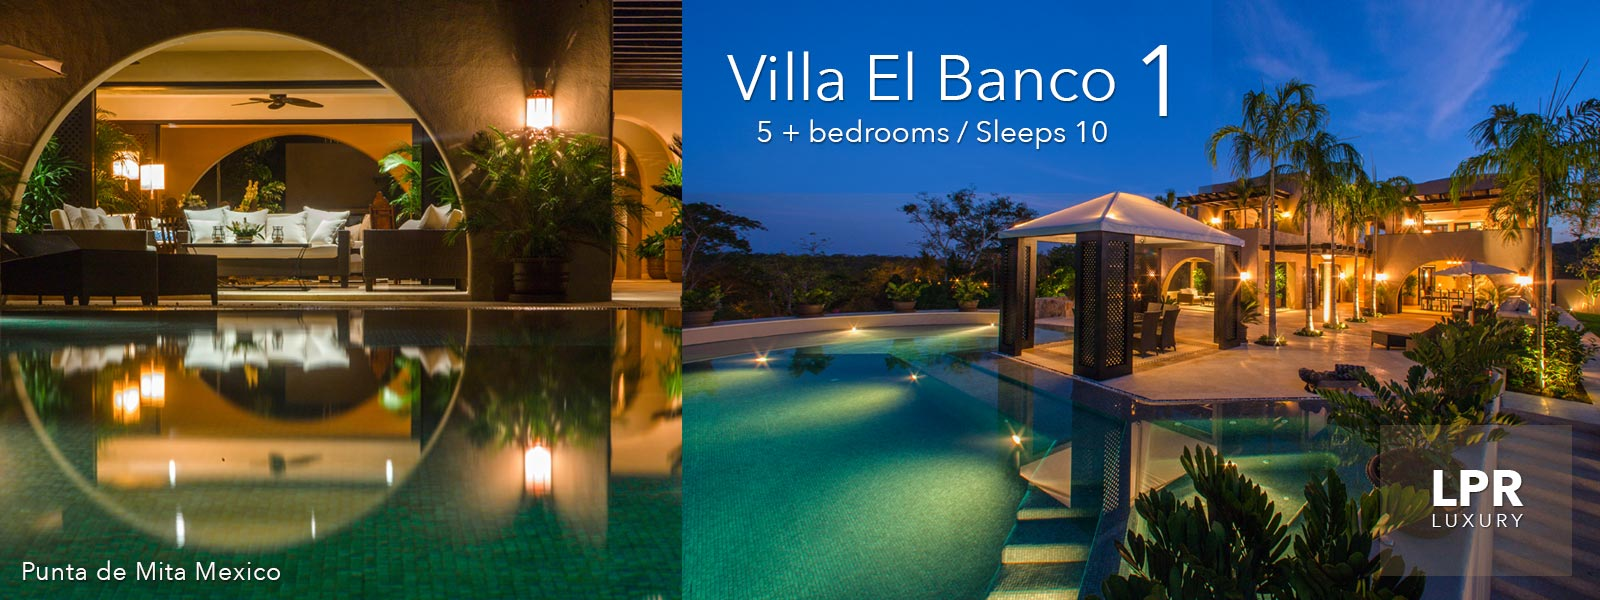 Villa El Banco 1 - Luxury Puerto Vallarta Vacation Rentals Villas